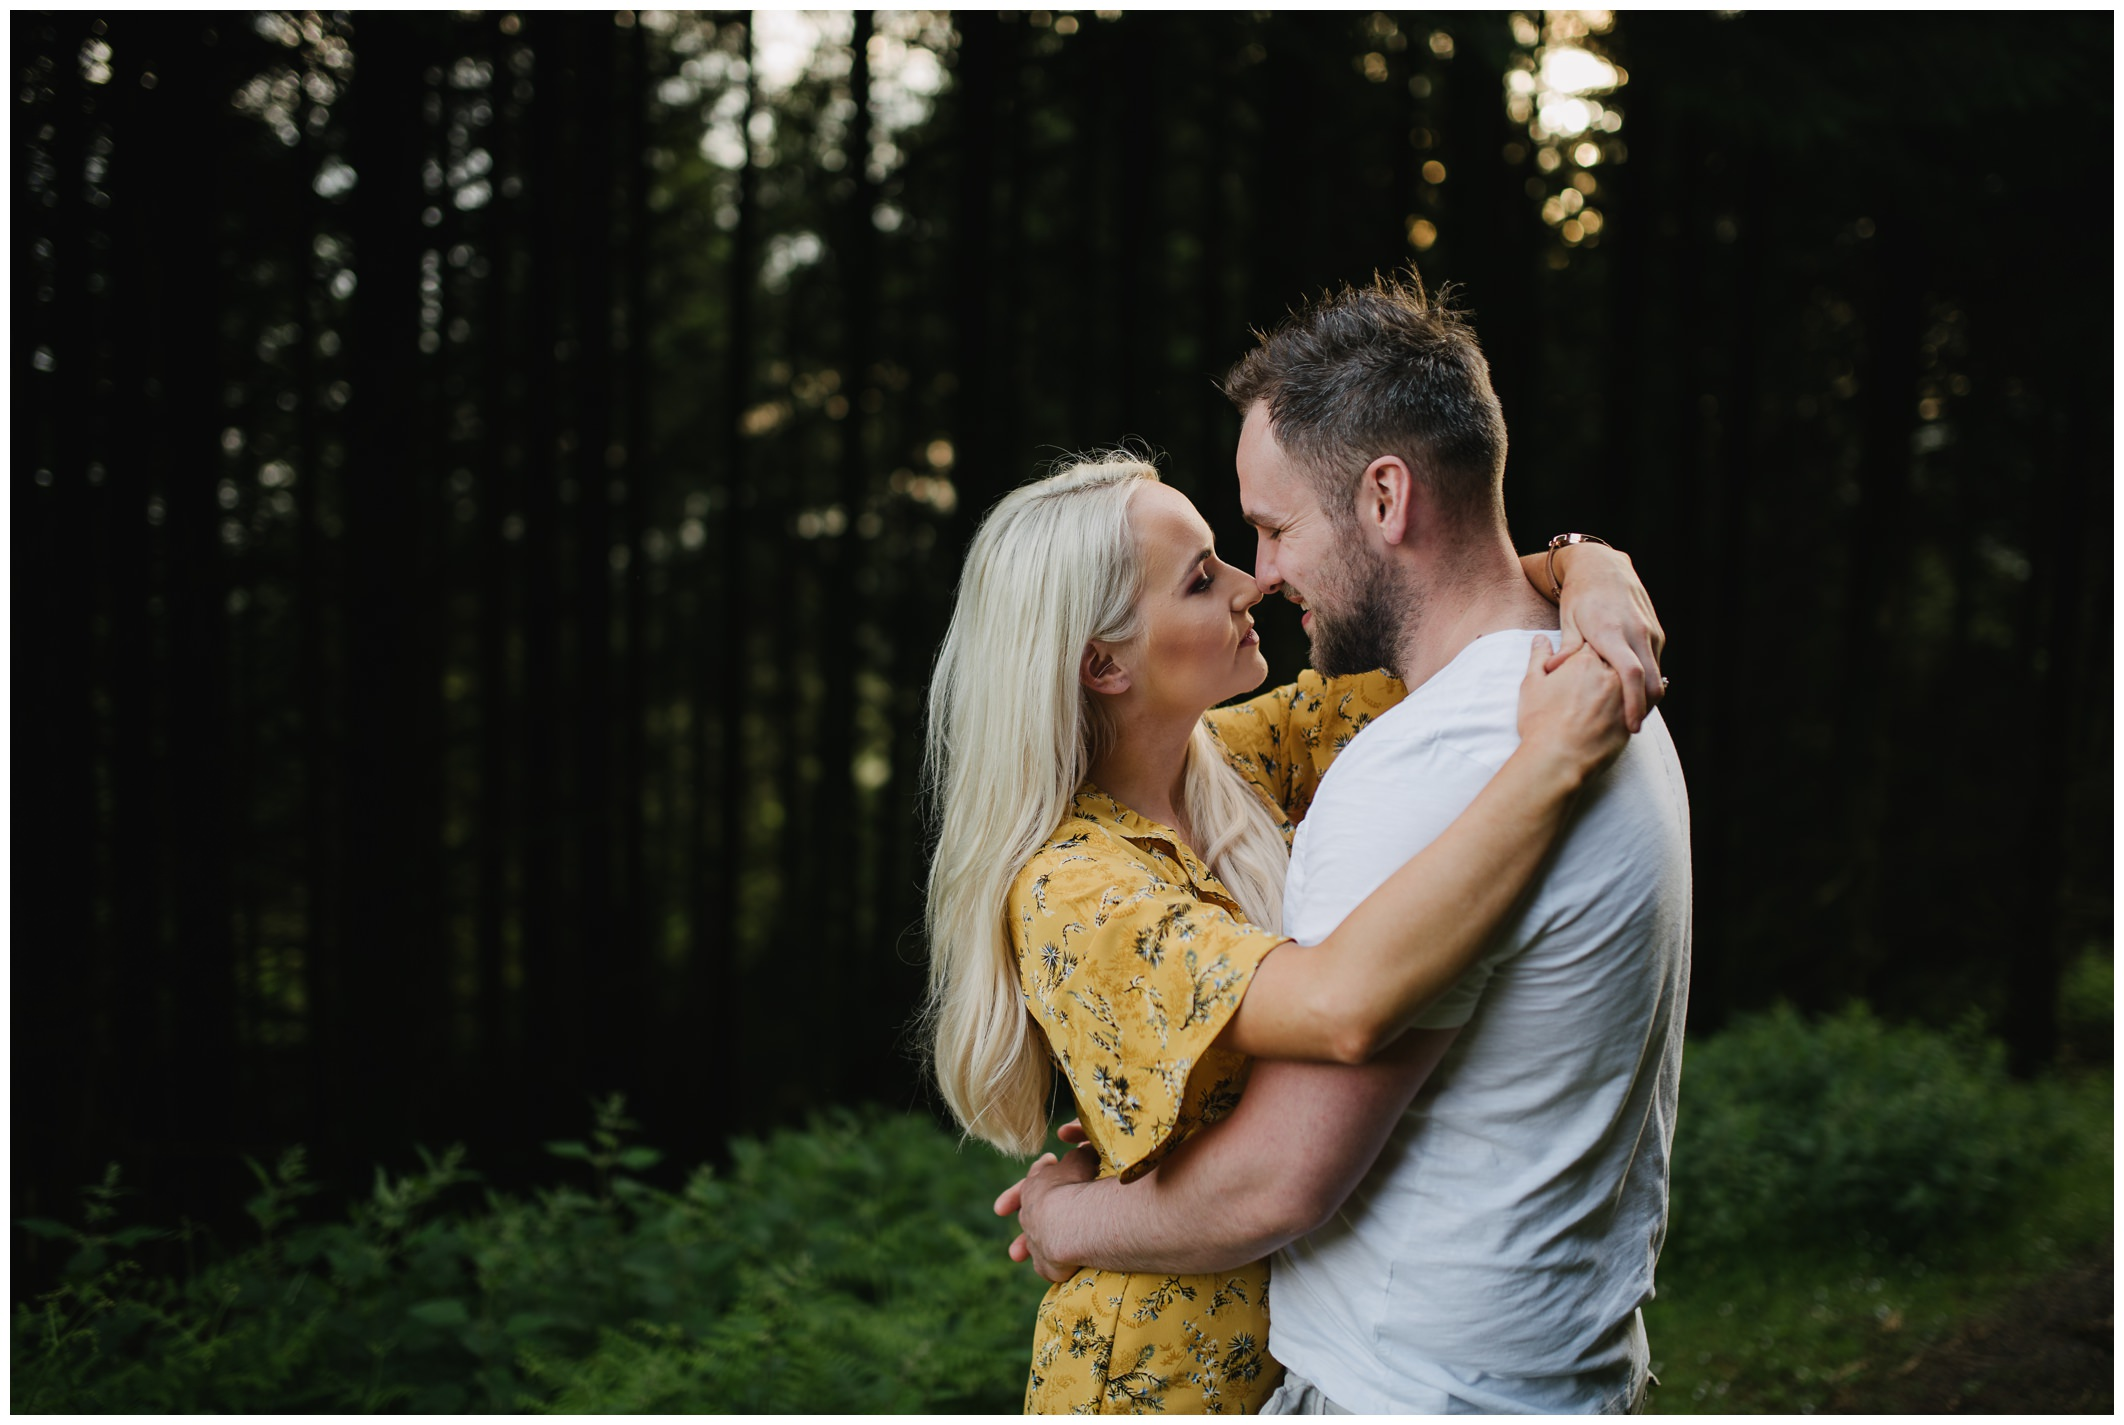 couple_shoot_gortin_forest_jude_browne_photography_0007.jpg